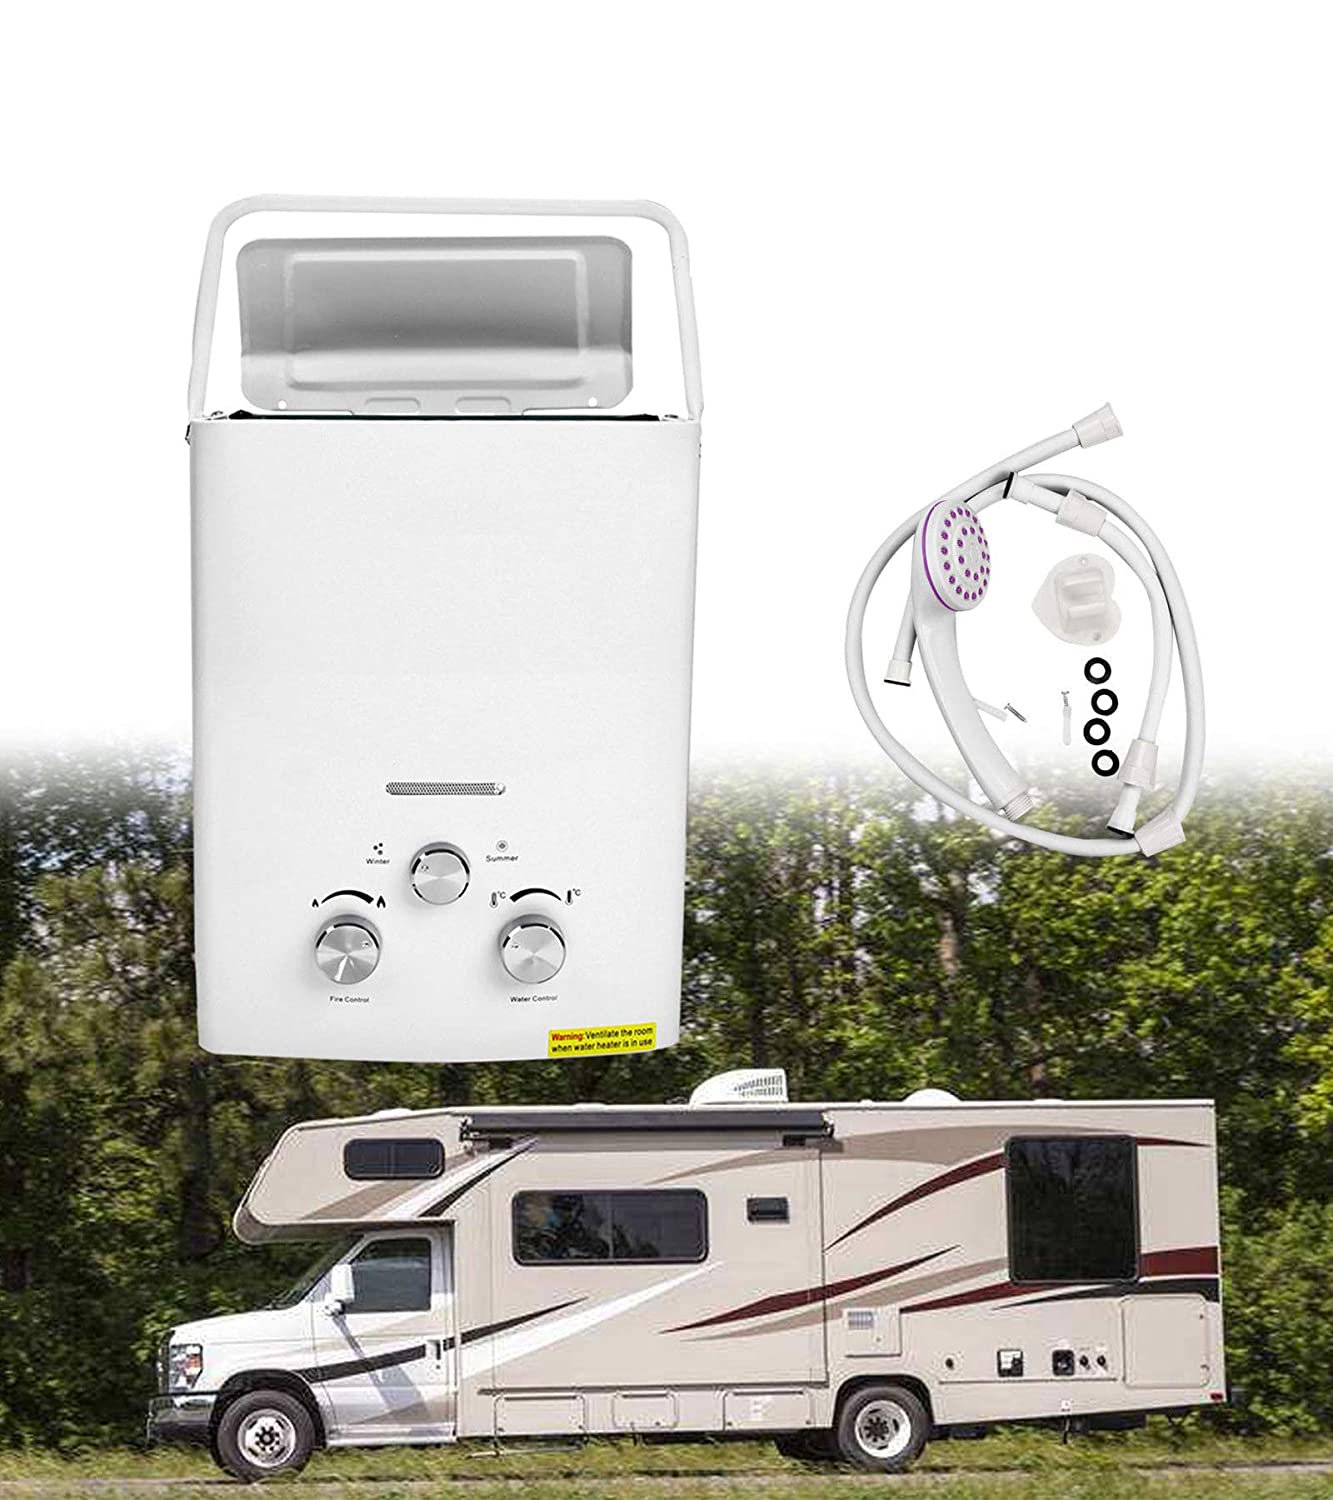 BLACKHORSE-RACING 6L 12KW Portable Tankless Hot Water Heater 2 GPM RV's & Campers Propane Gas LPG